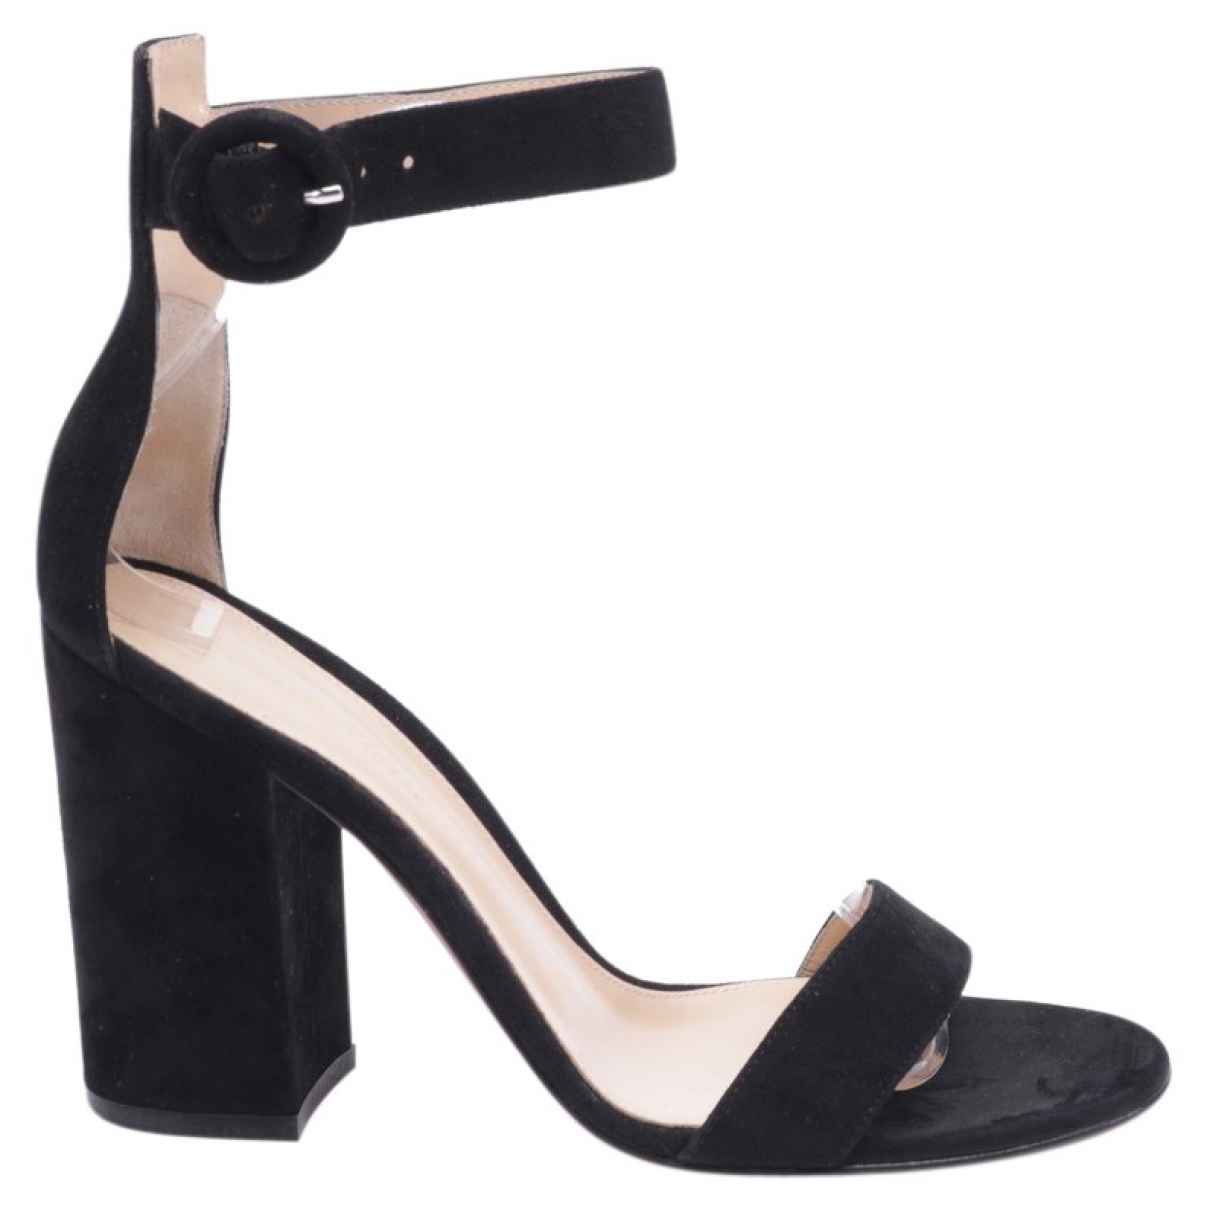 Gianvito Rossi N Black Leather Sandals for Women 38.5 EU